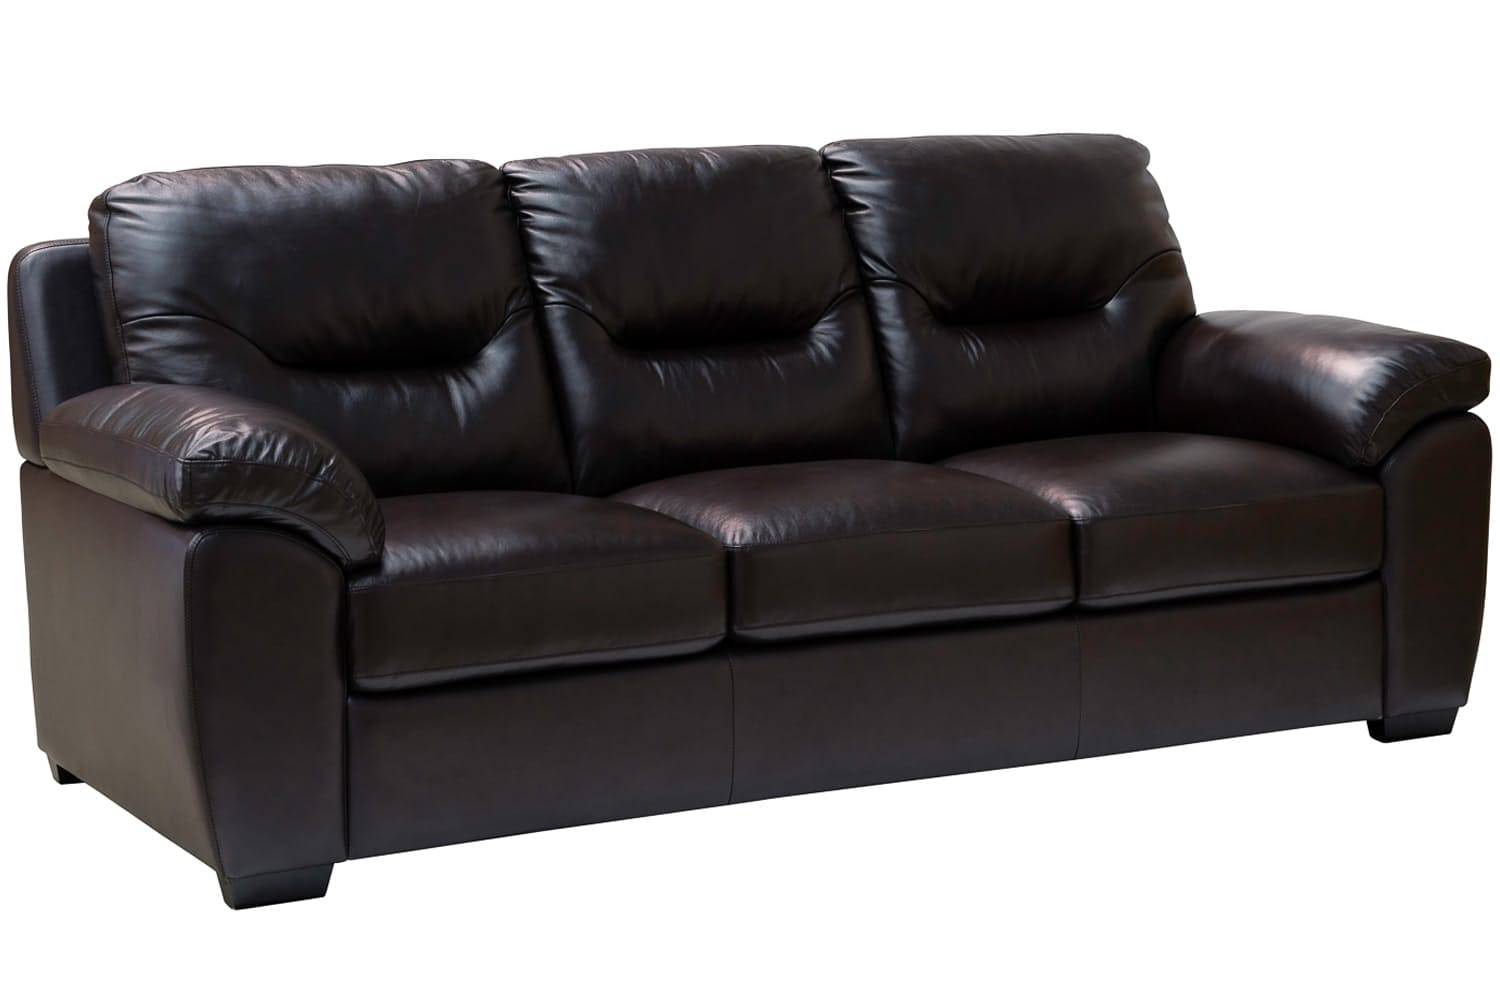 Astor 3 Seater Sofa